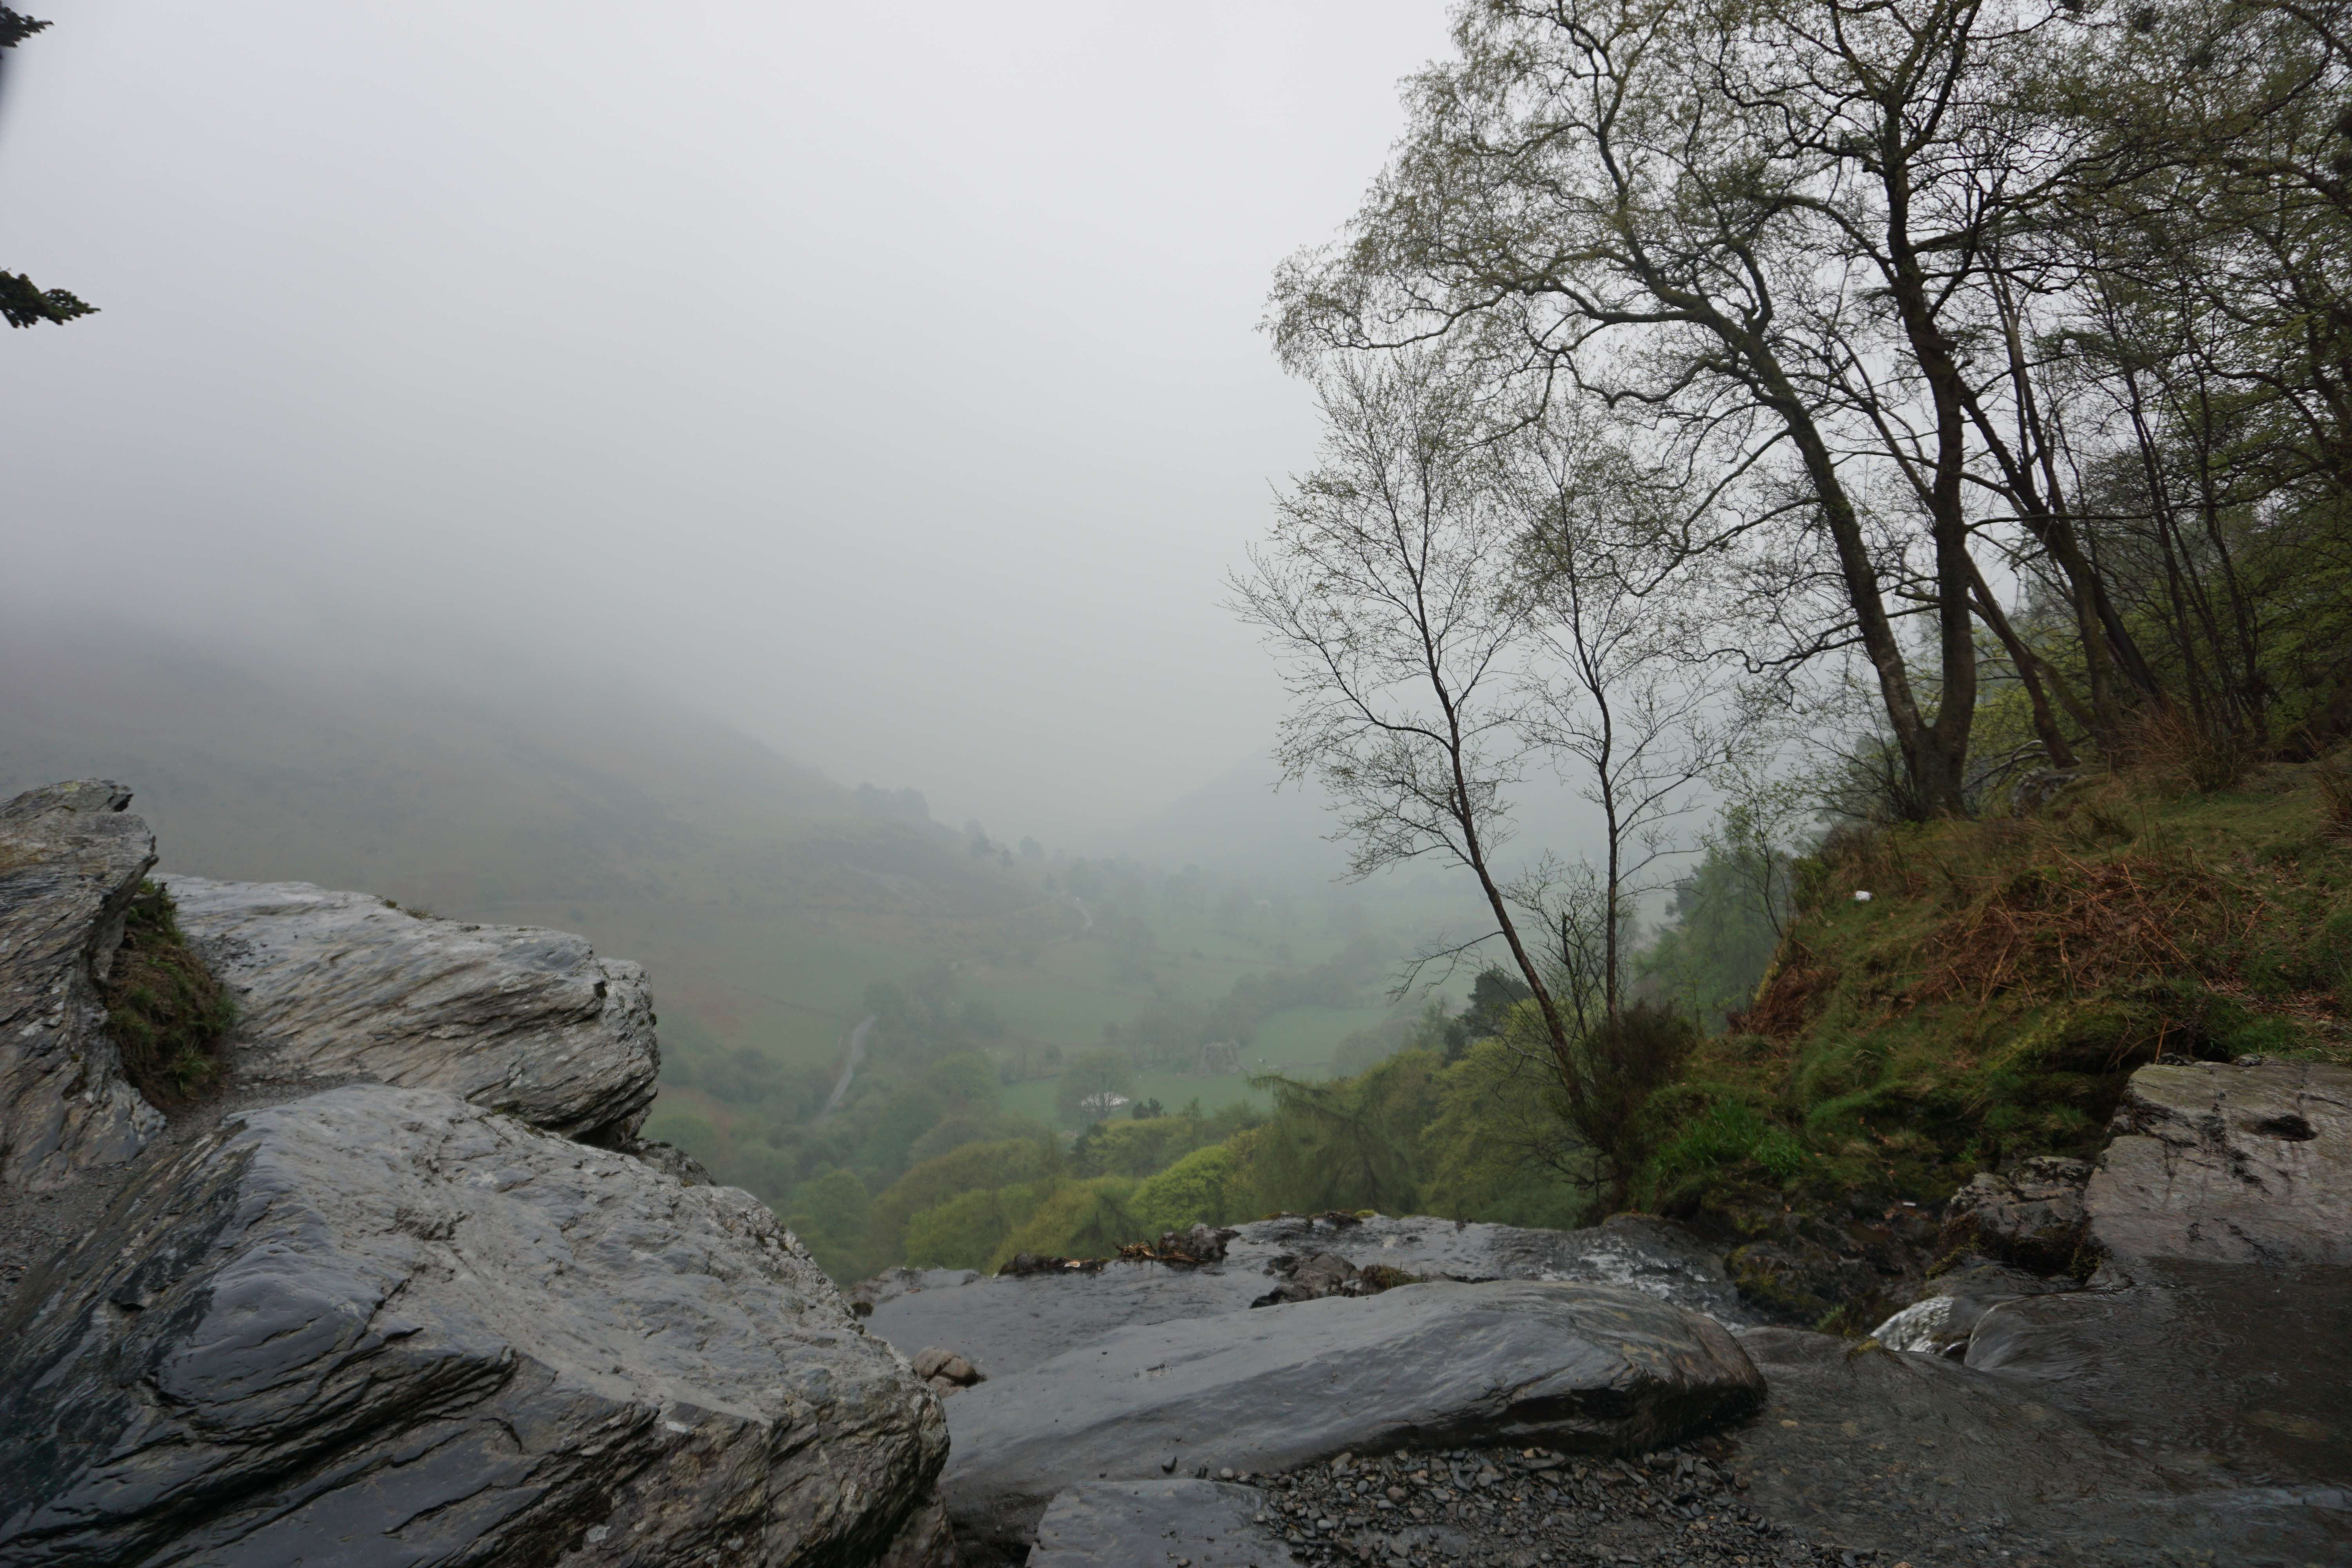 A rainy walk to Pistyll Rhaeadr waterfall